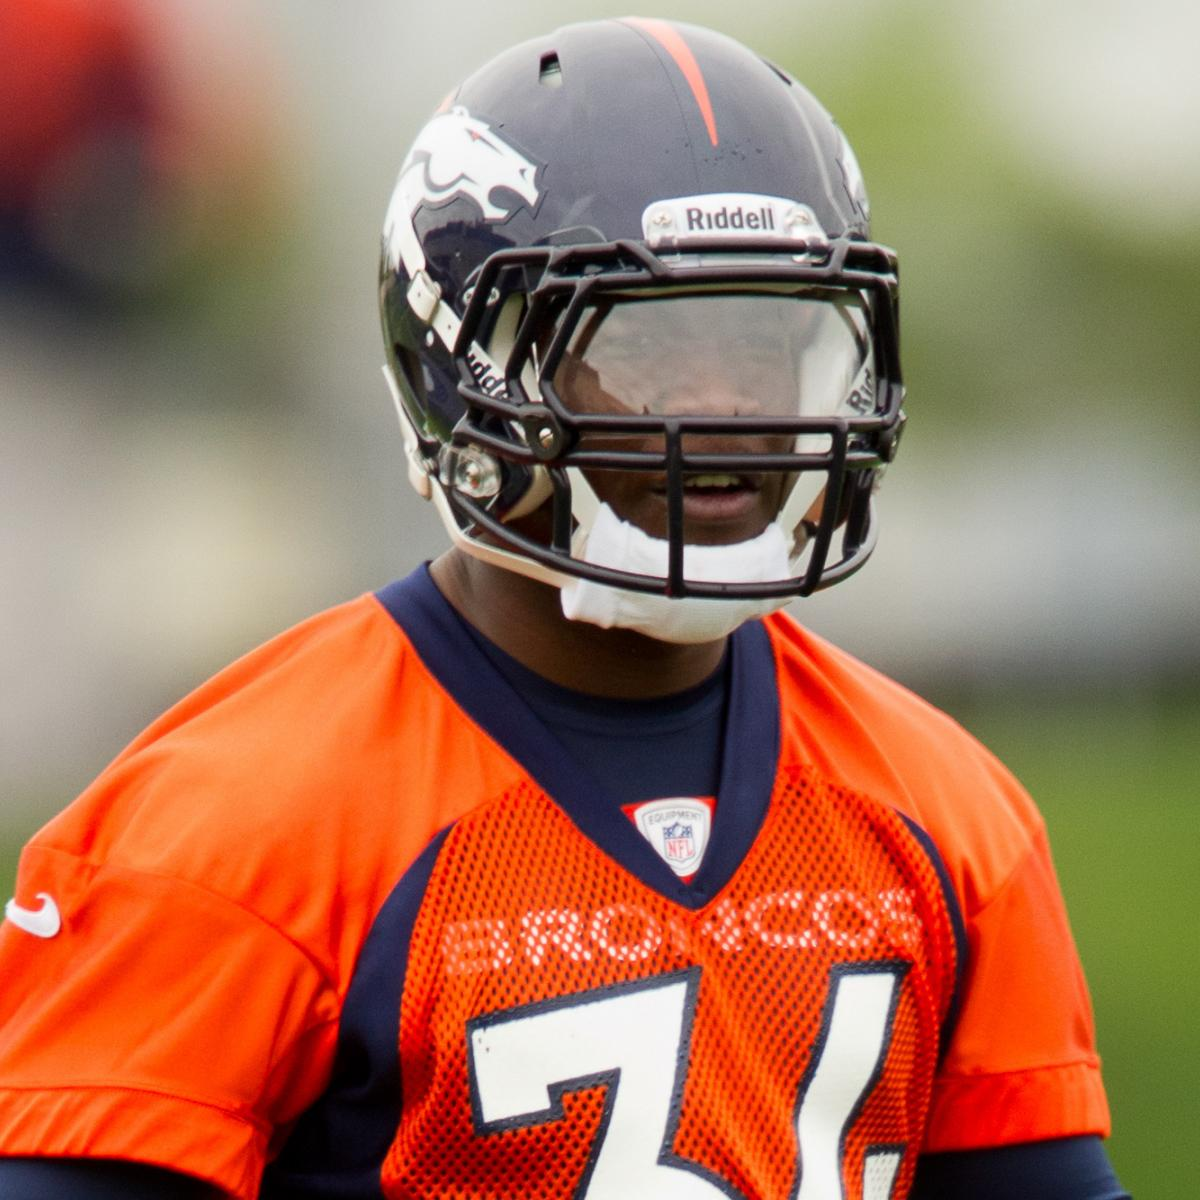 Denver Broncos Depth Chart: Can Ronnie Hillman Overtake Willis McGahee On The Broncos